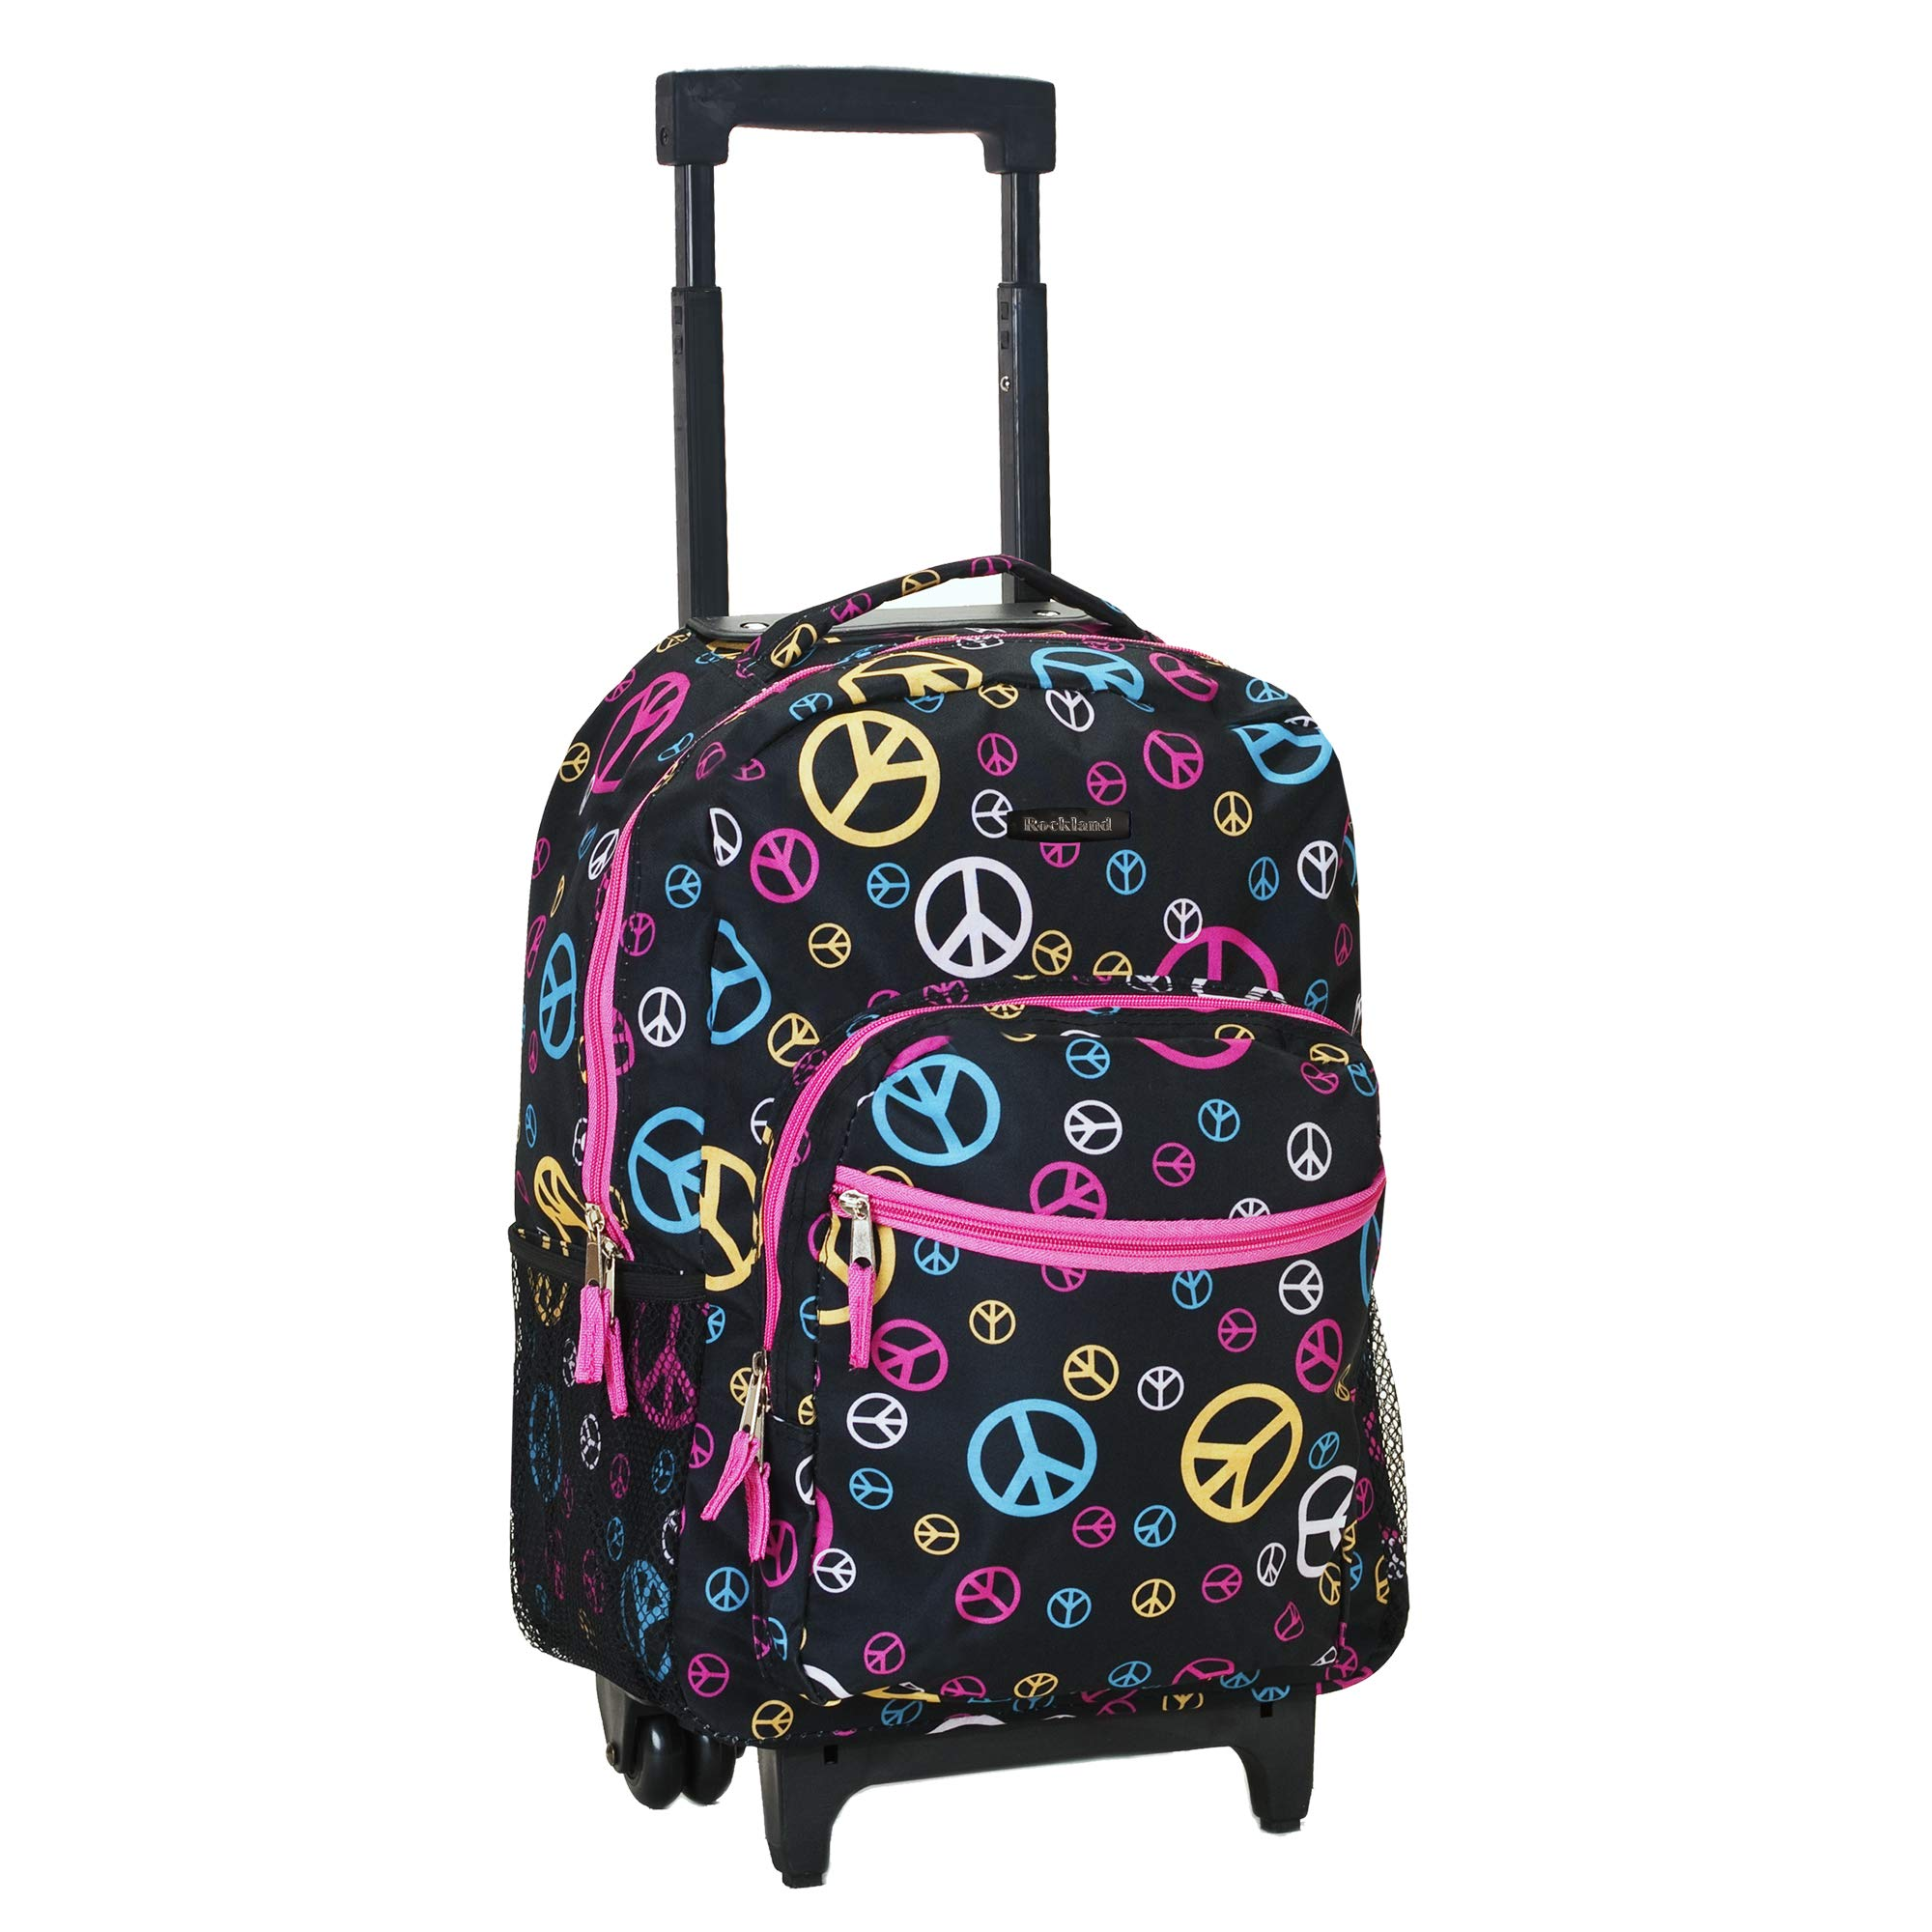 Rockland Luggage 17 Inch Rolling Backpack, Peace, Medium by Rockland